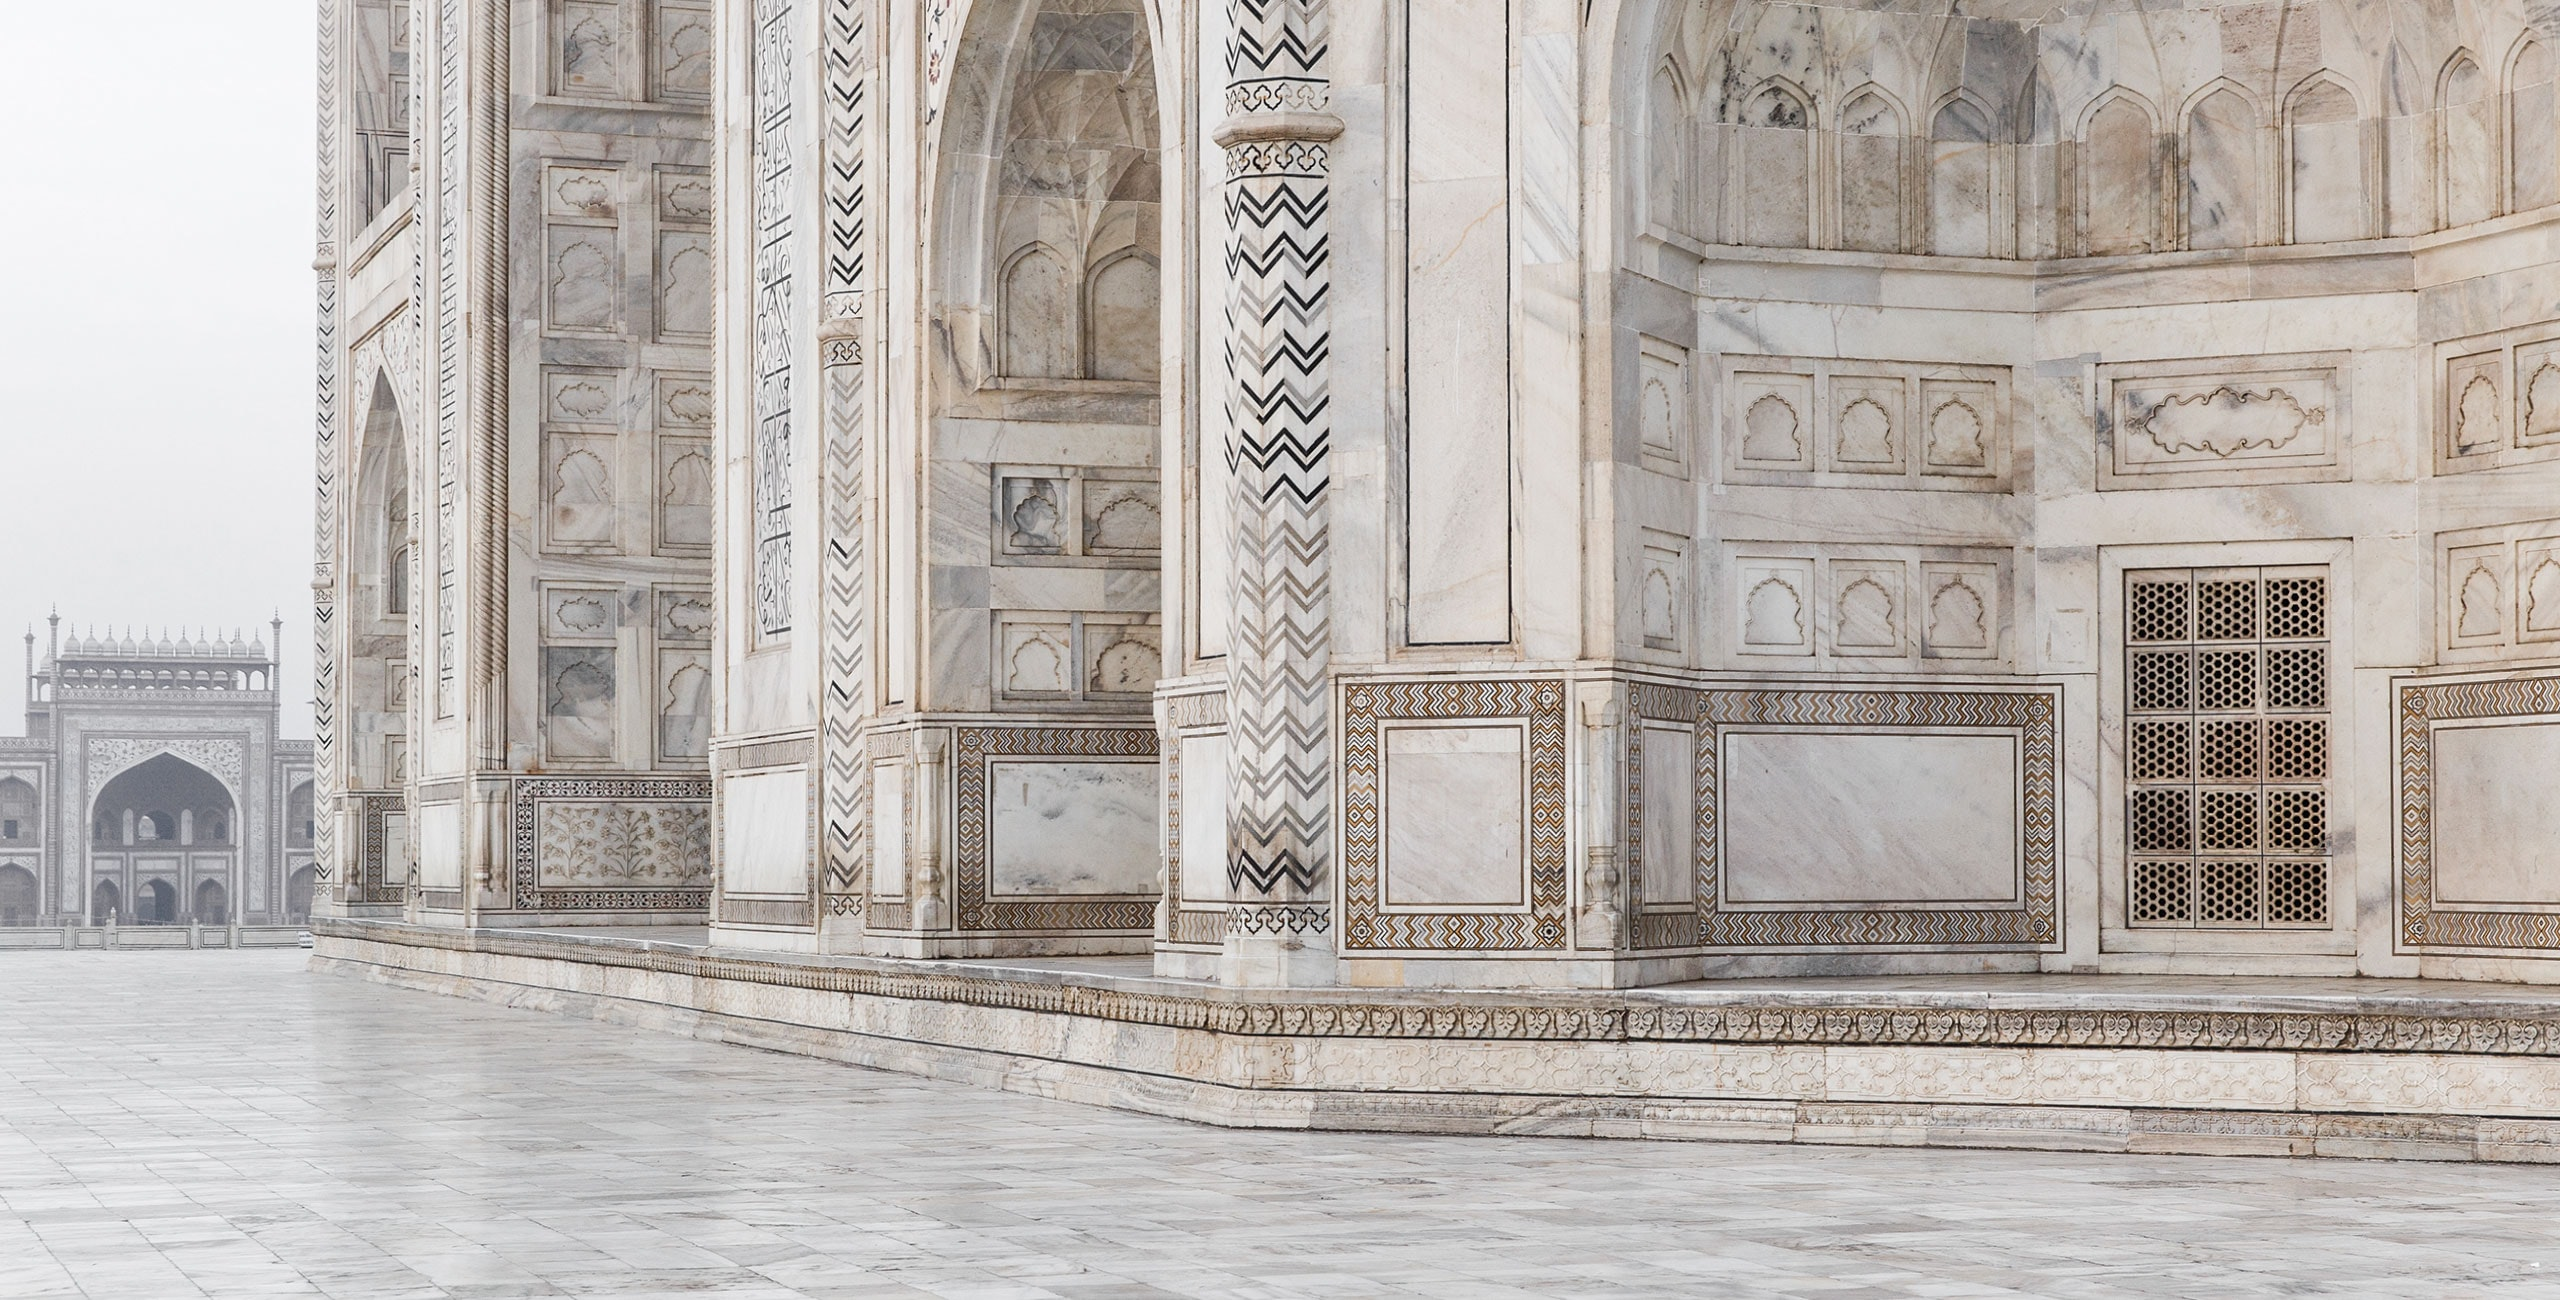 A historical, white structure that has a lot of unique details carved into the marble